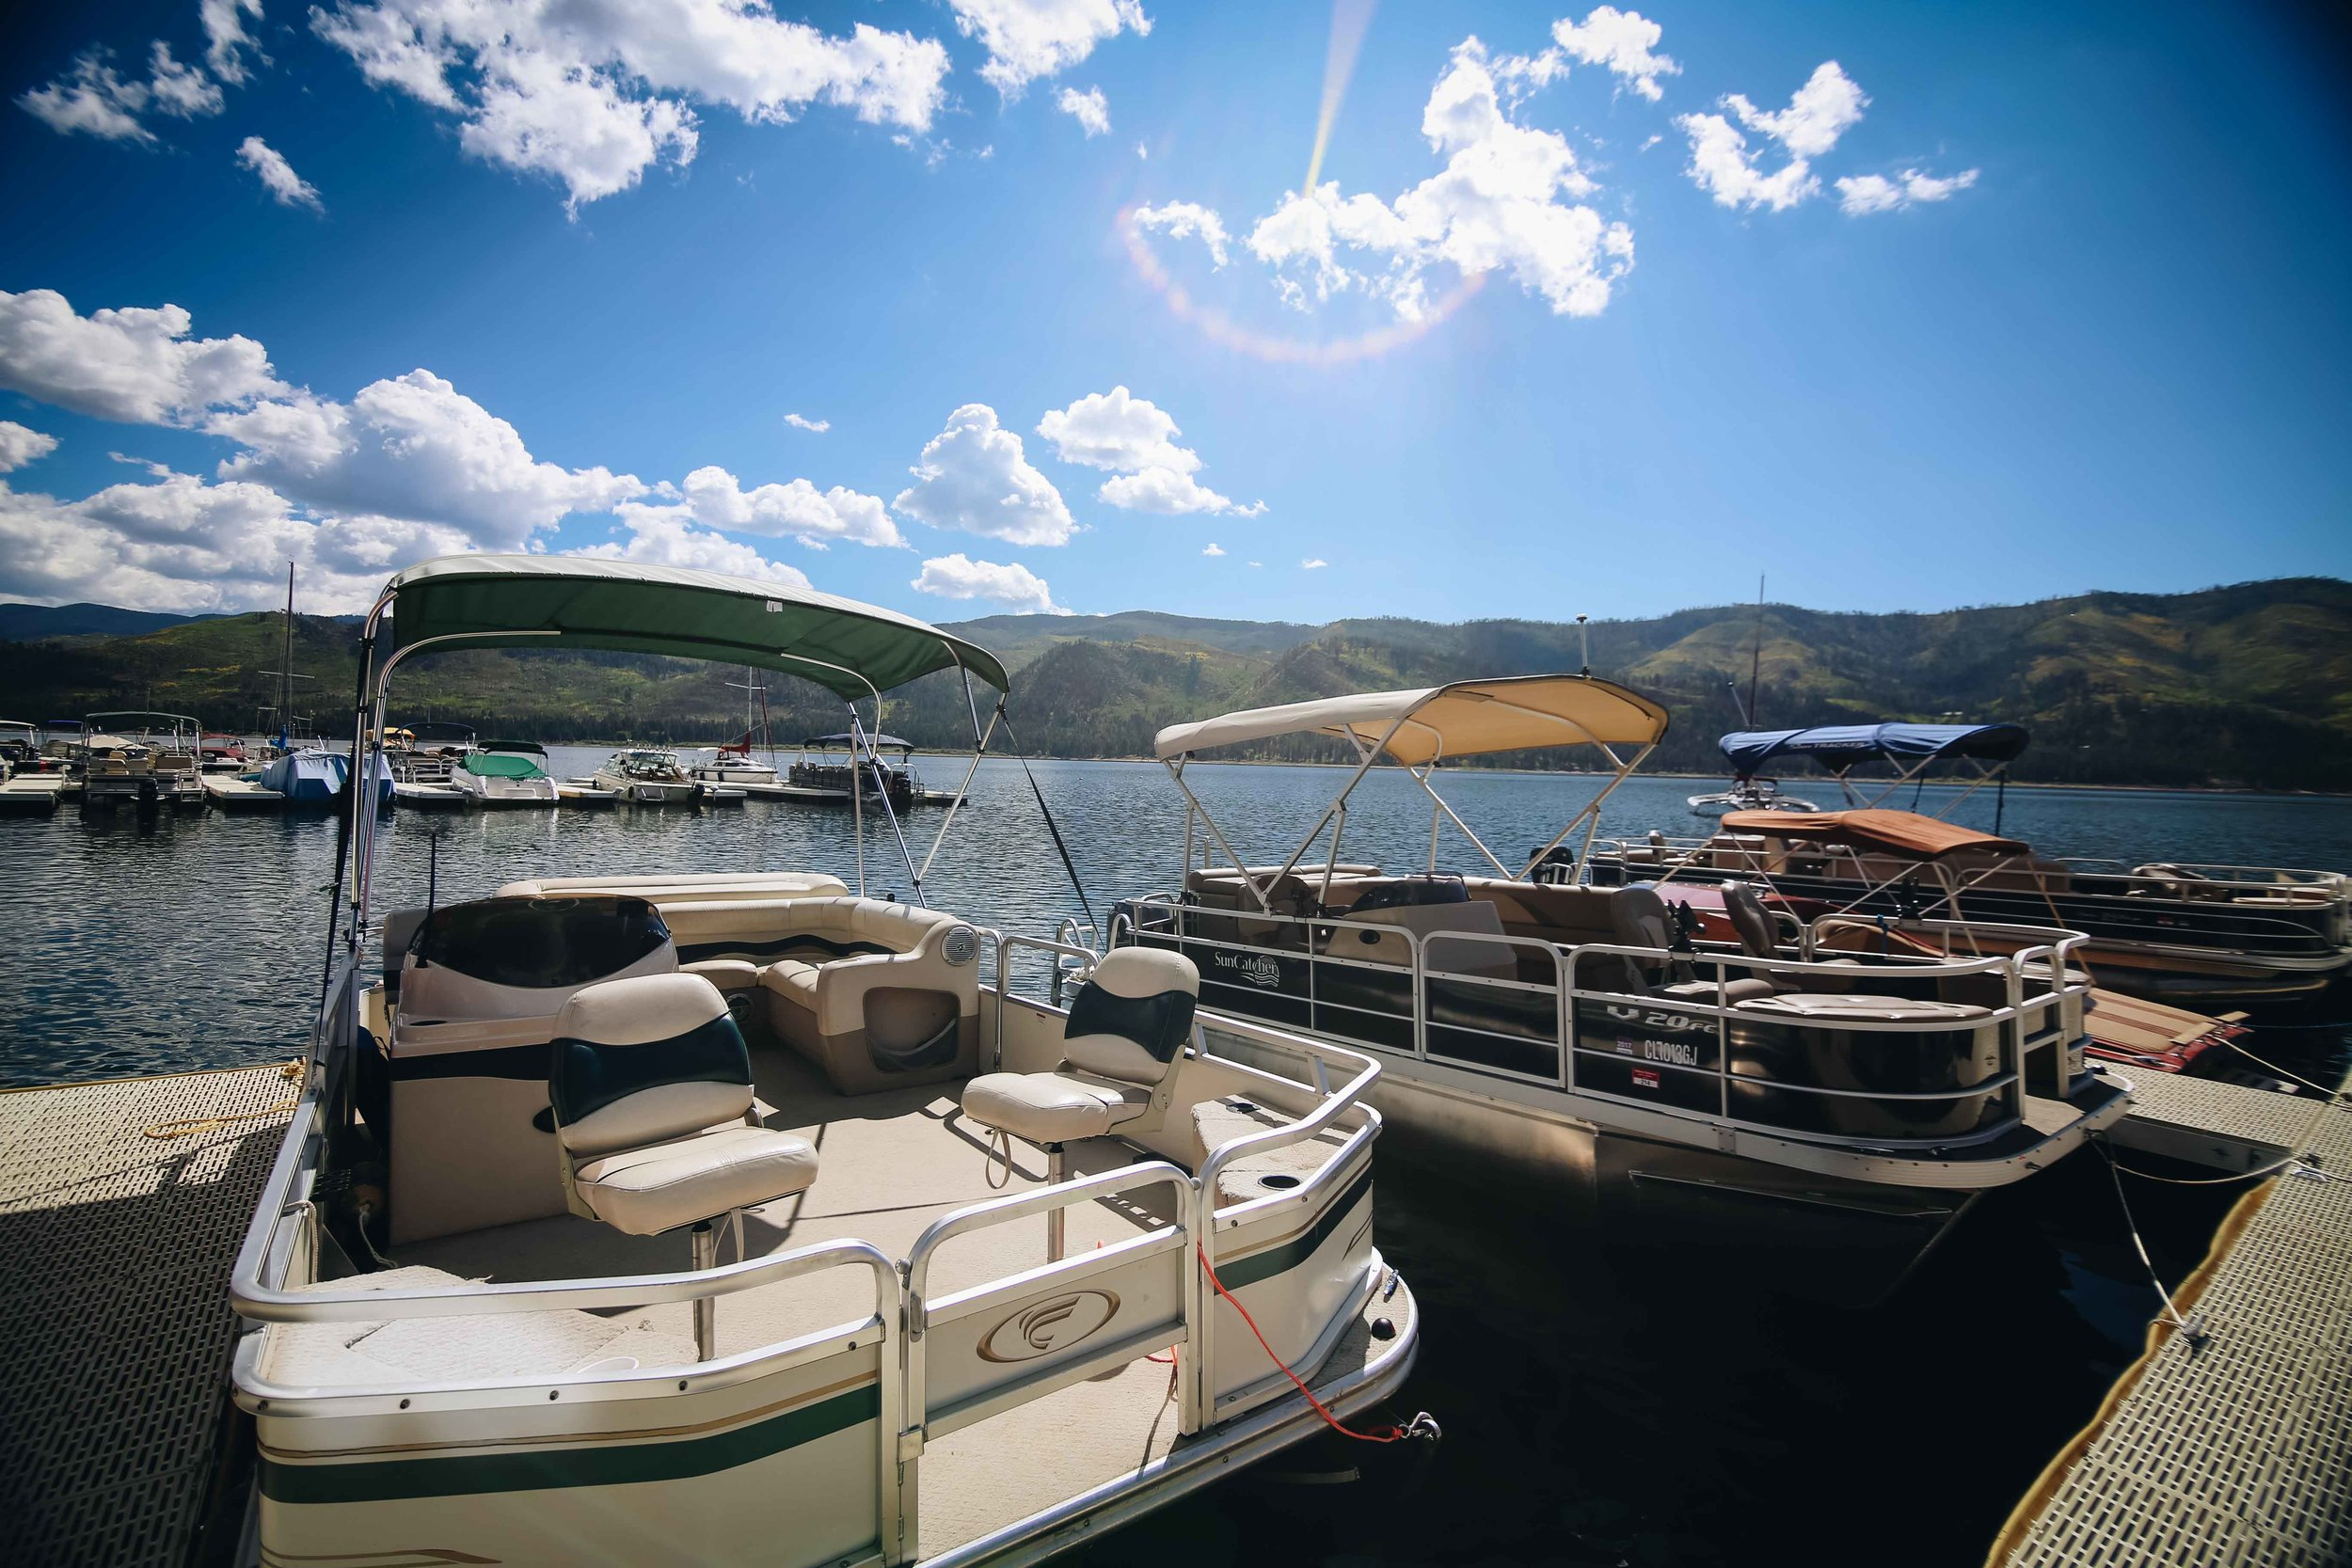 09-13 Vallecito Marina, Boats, Dock, Lake, Fishing, Bear-6469.jpg